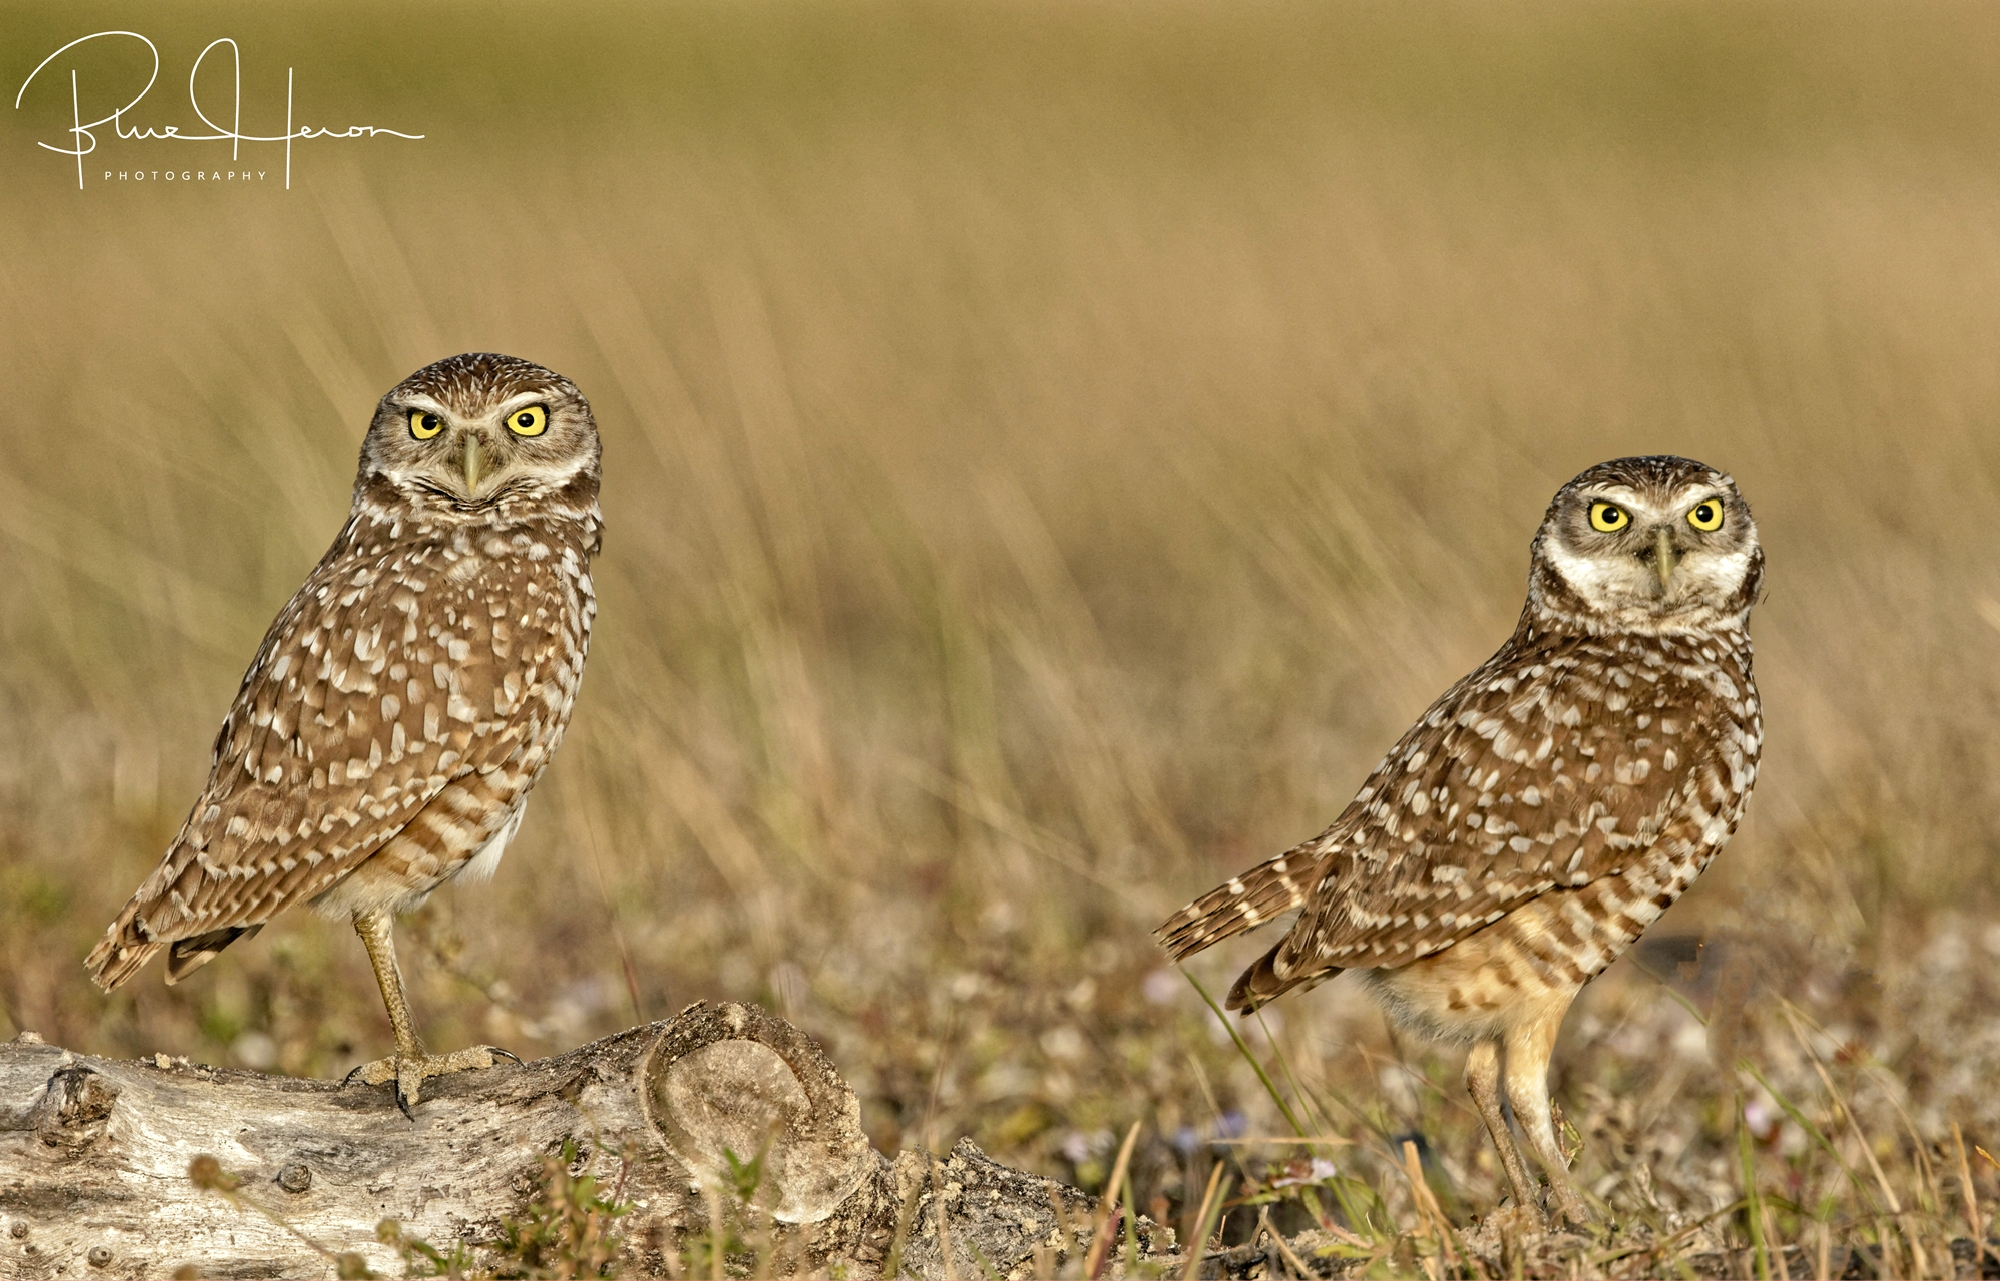 This pair of Burrowing Owls starred at us starring at them